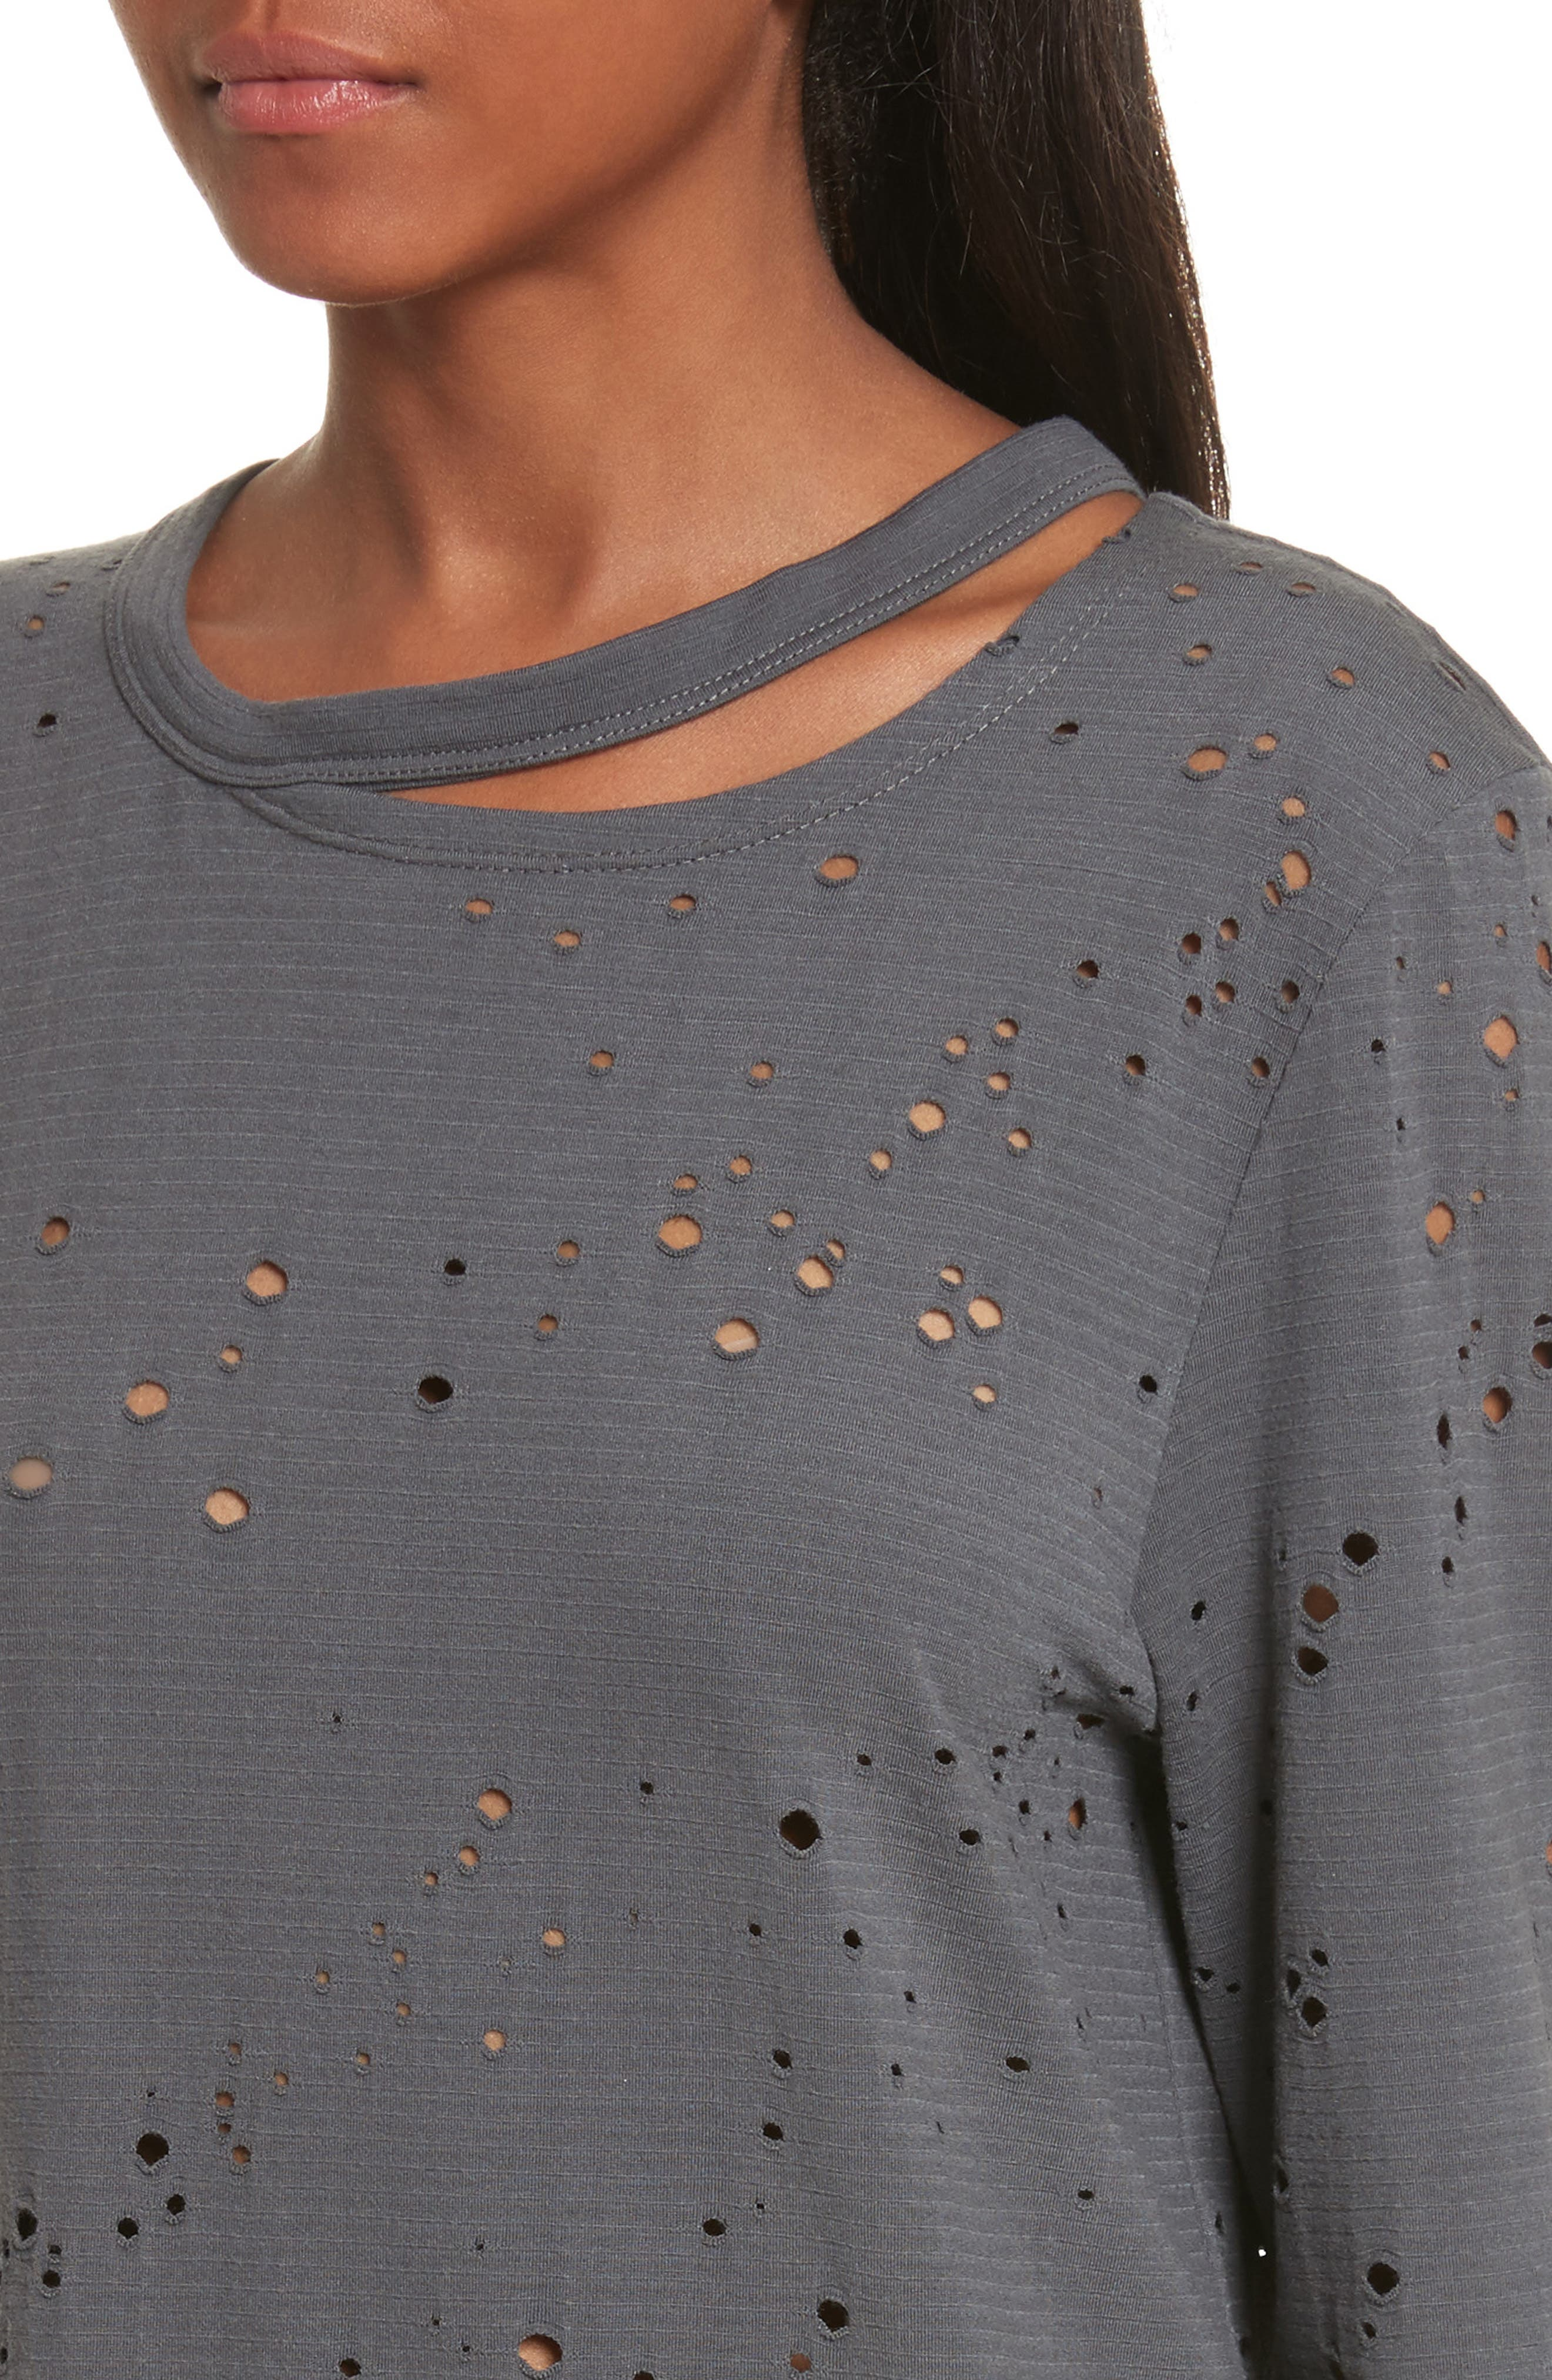 Waverly Perforated Tee,                             Alternate thumbnail 4, color,                             022